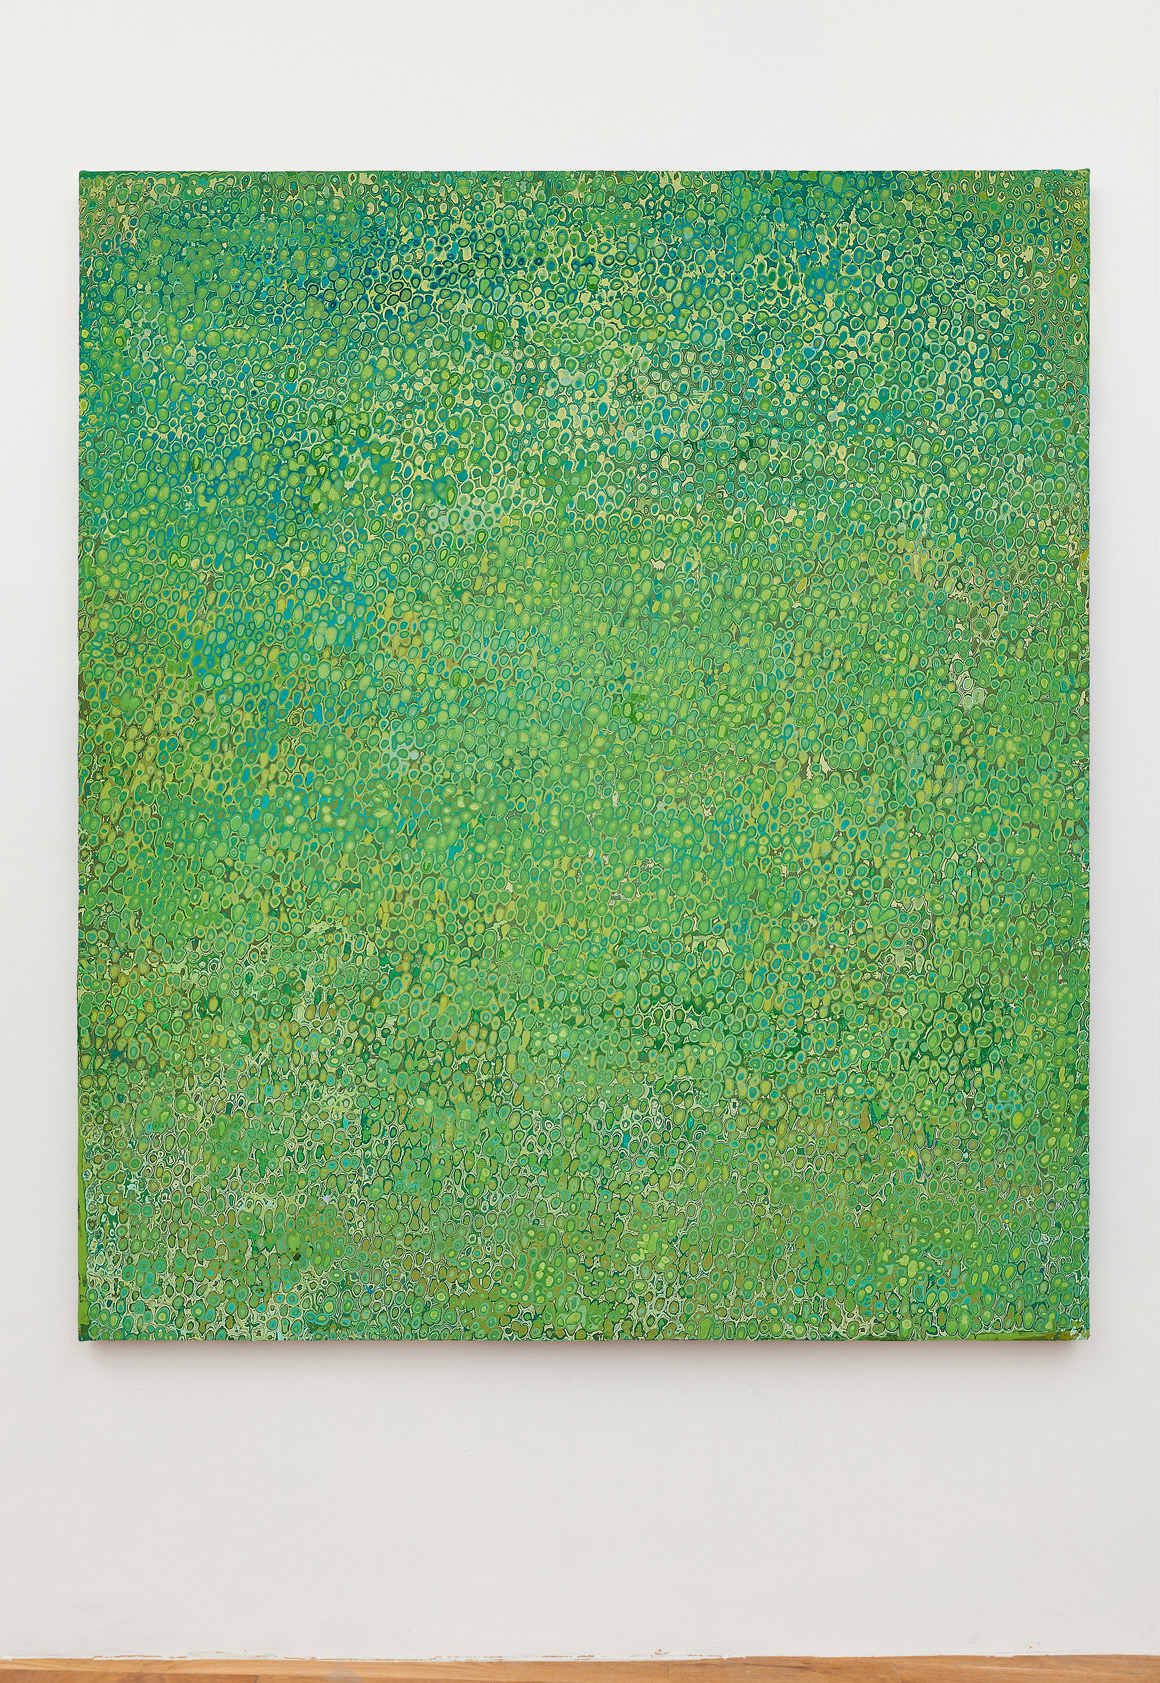 "<p><span class=""name"">Andrew Jensdotter</span><br><em>Green 79</em><span class='media'>Carved latex on canvas</span>80 x 68 in (203.2 x 172.7 cm)<br>2018<br><a class='inquire' href='mailto:info@gildargallery.com?subject=Artwork Inquiry AJEN0050&body=I am interested in finding out more about Green 79 by Andrew Jensdotter'>Inquire</a></p>"